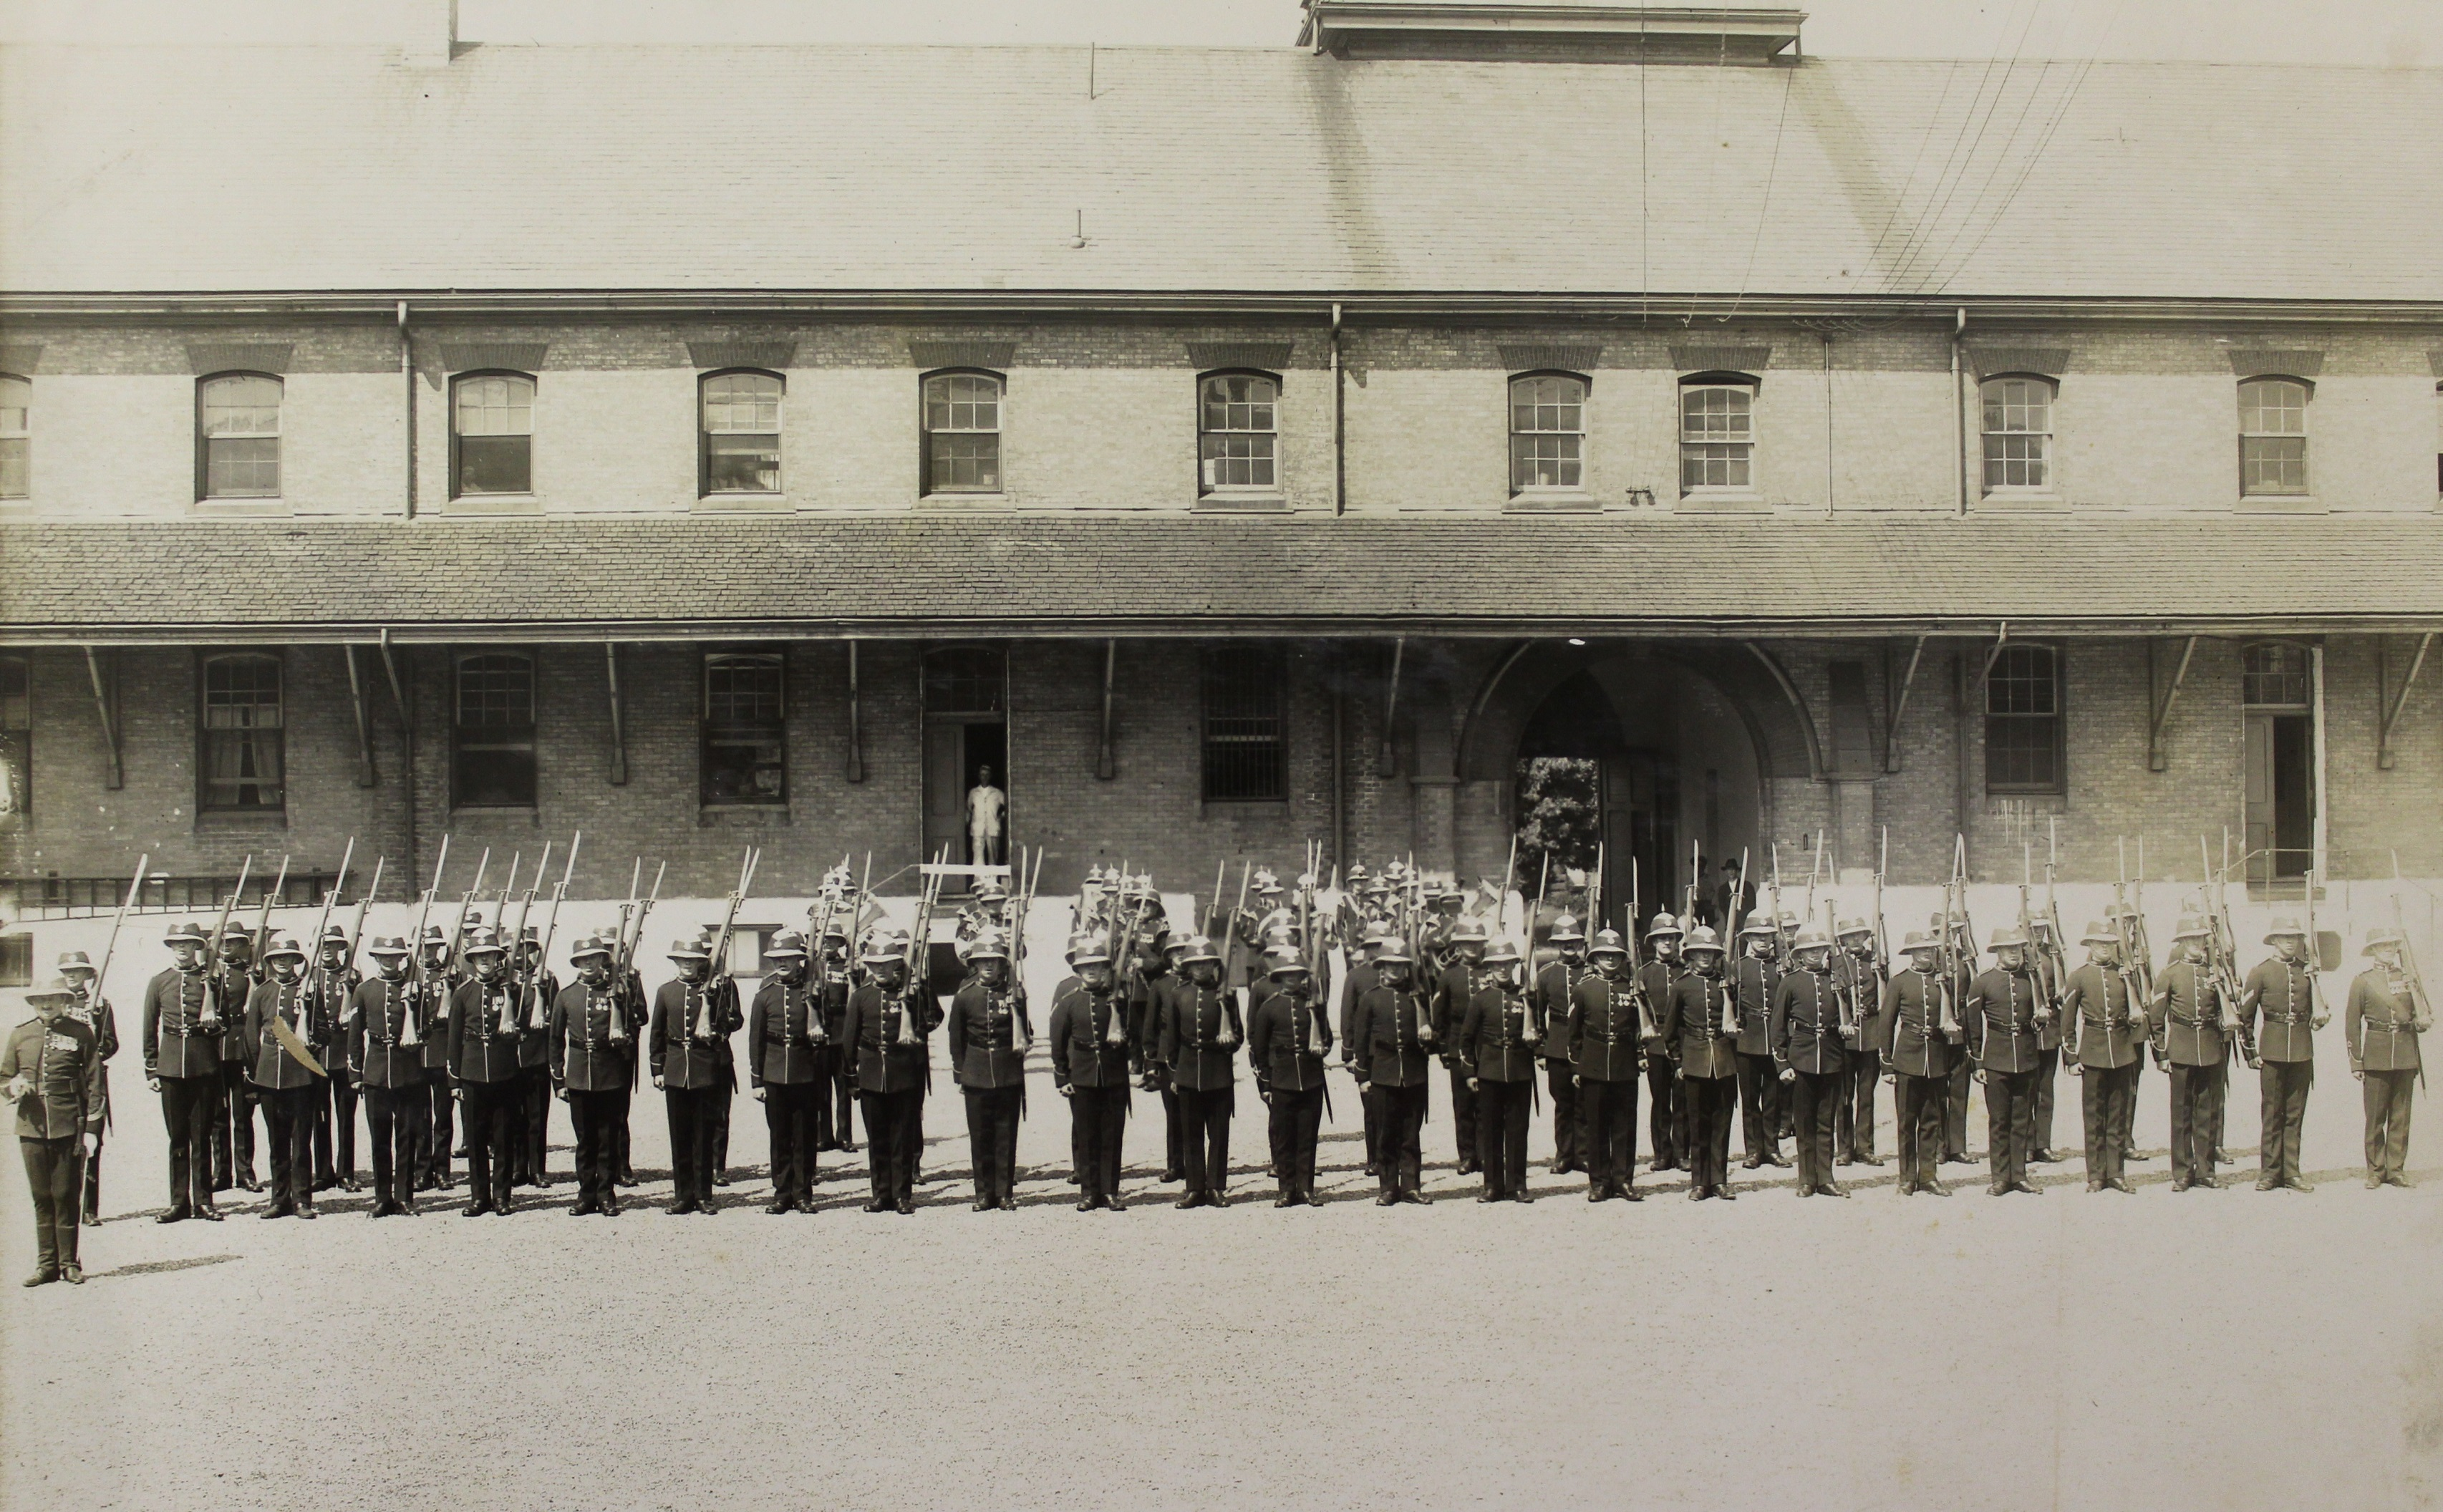 Guard of Honour for the Governor General at Wolseley Barracks, June 21, 1927